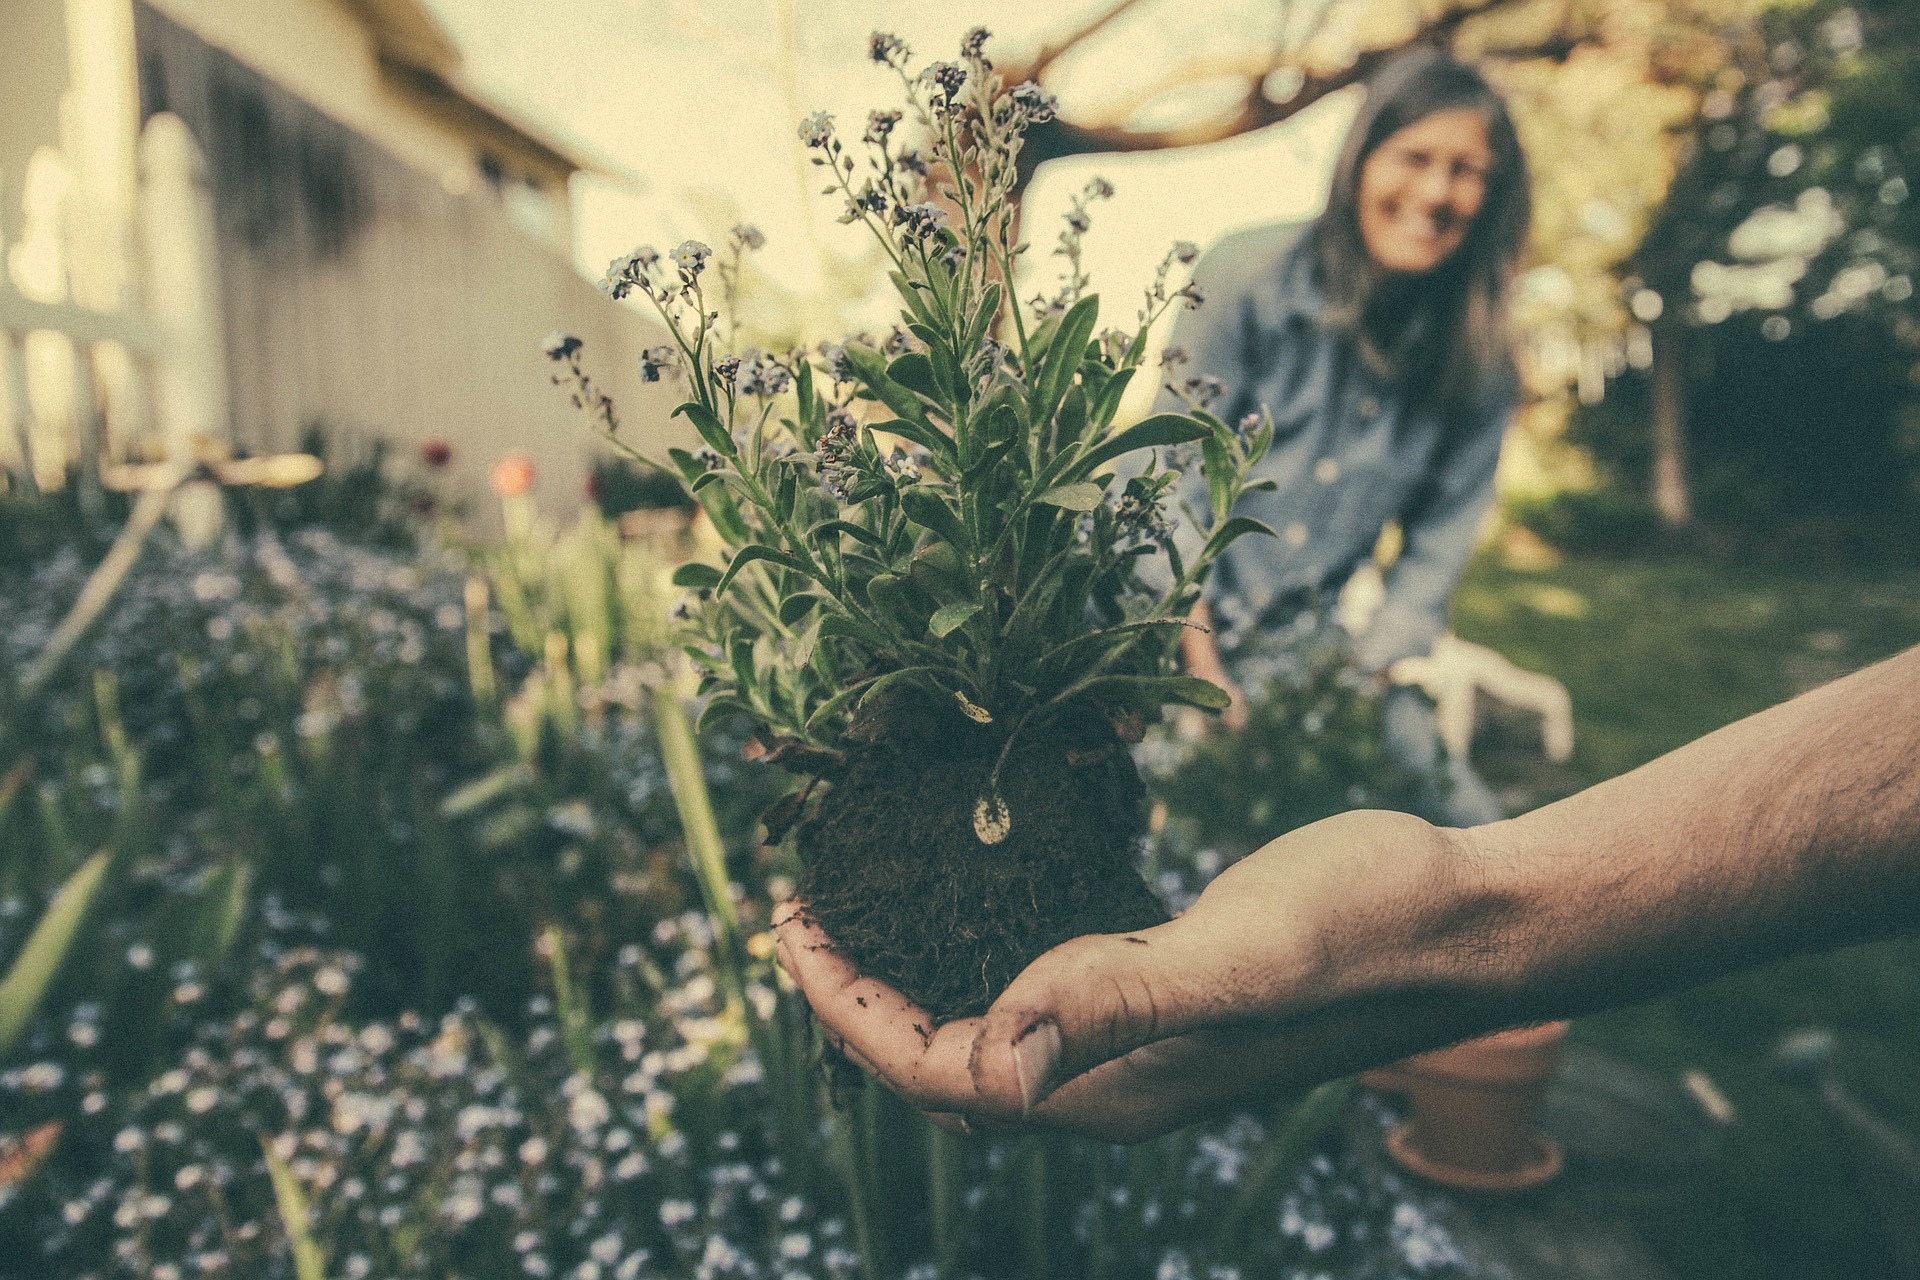 someone holding to a flower in their hand in the garden with a smiling woman in the background